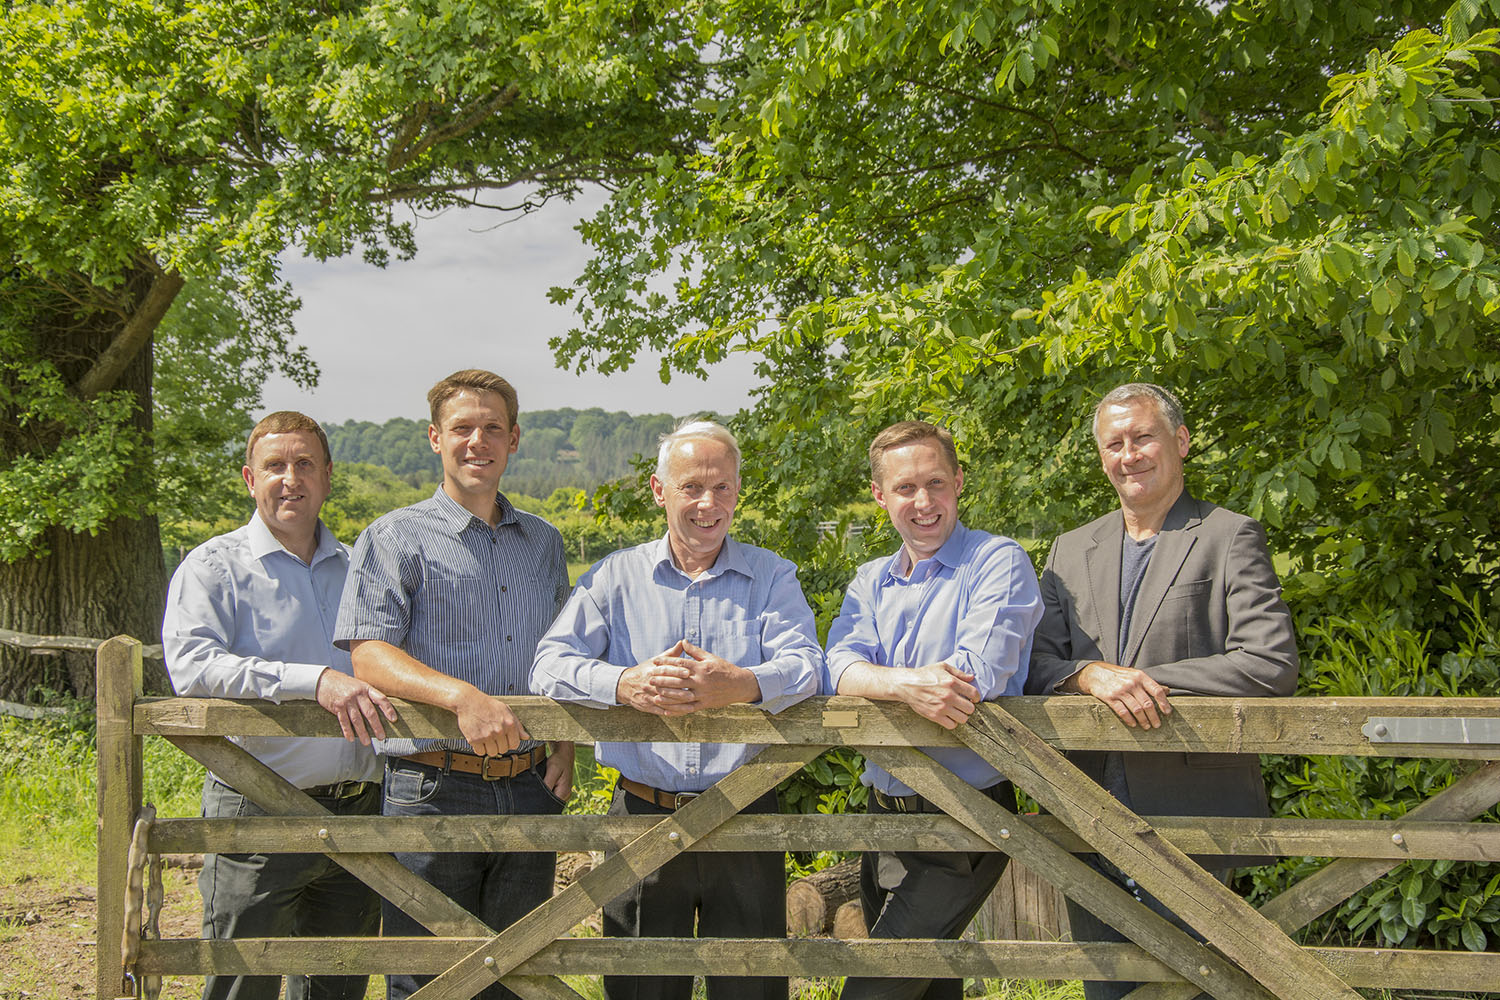 About us - Find out more about Valley Landscape Projects